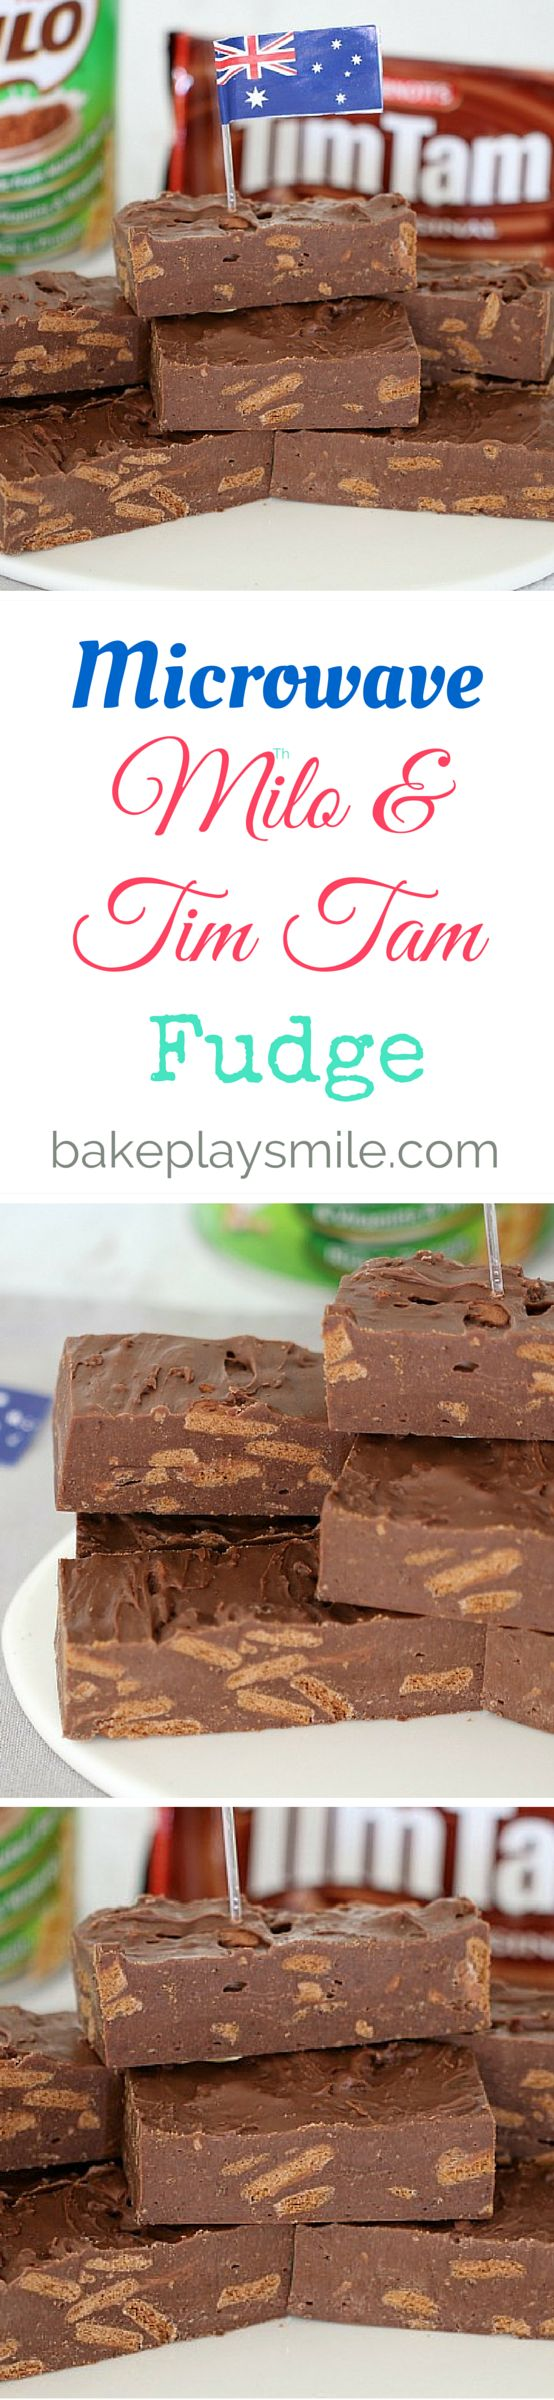 It doesn't get any more Australian than this Microwave Tim Tam & Milo Fudge. Two iconic Australian ingredients in one super easy fudge! #australian #australia #day #tim #tam #recipes #milo #fudge #microwave #nobake #easy